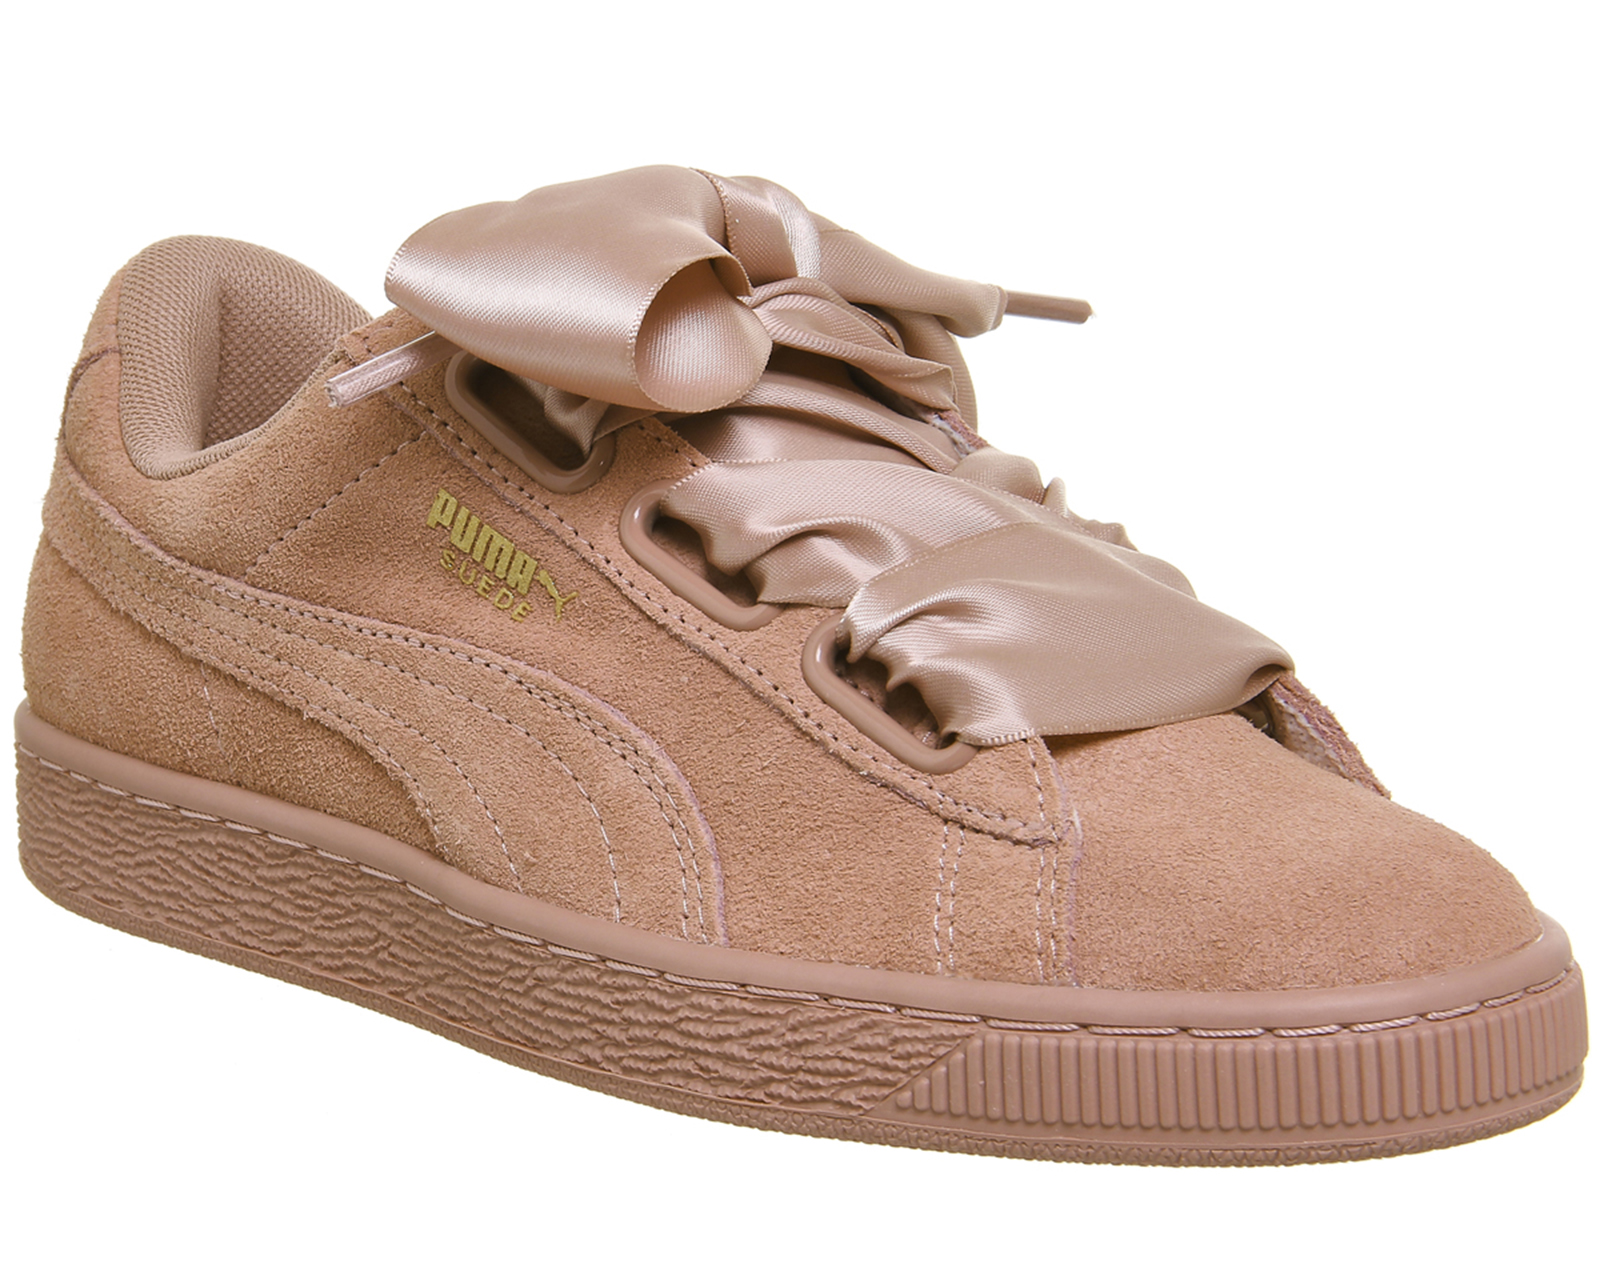 hot sale online 24445 f21ec Sentinel Womens Puma Suede Heart Trainers CAMEO BROWN SATIN BOW Trainers  Shoes